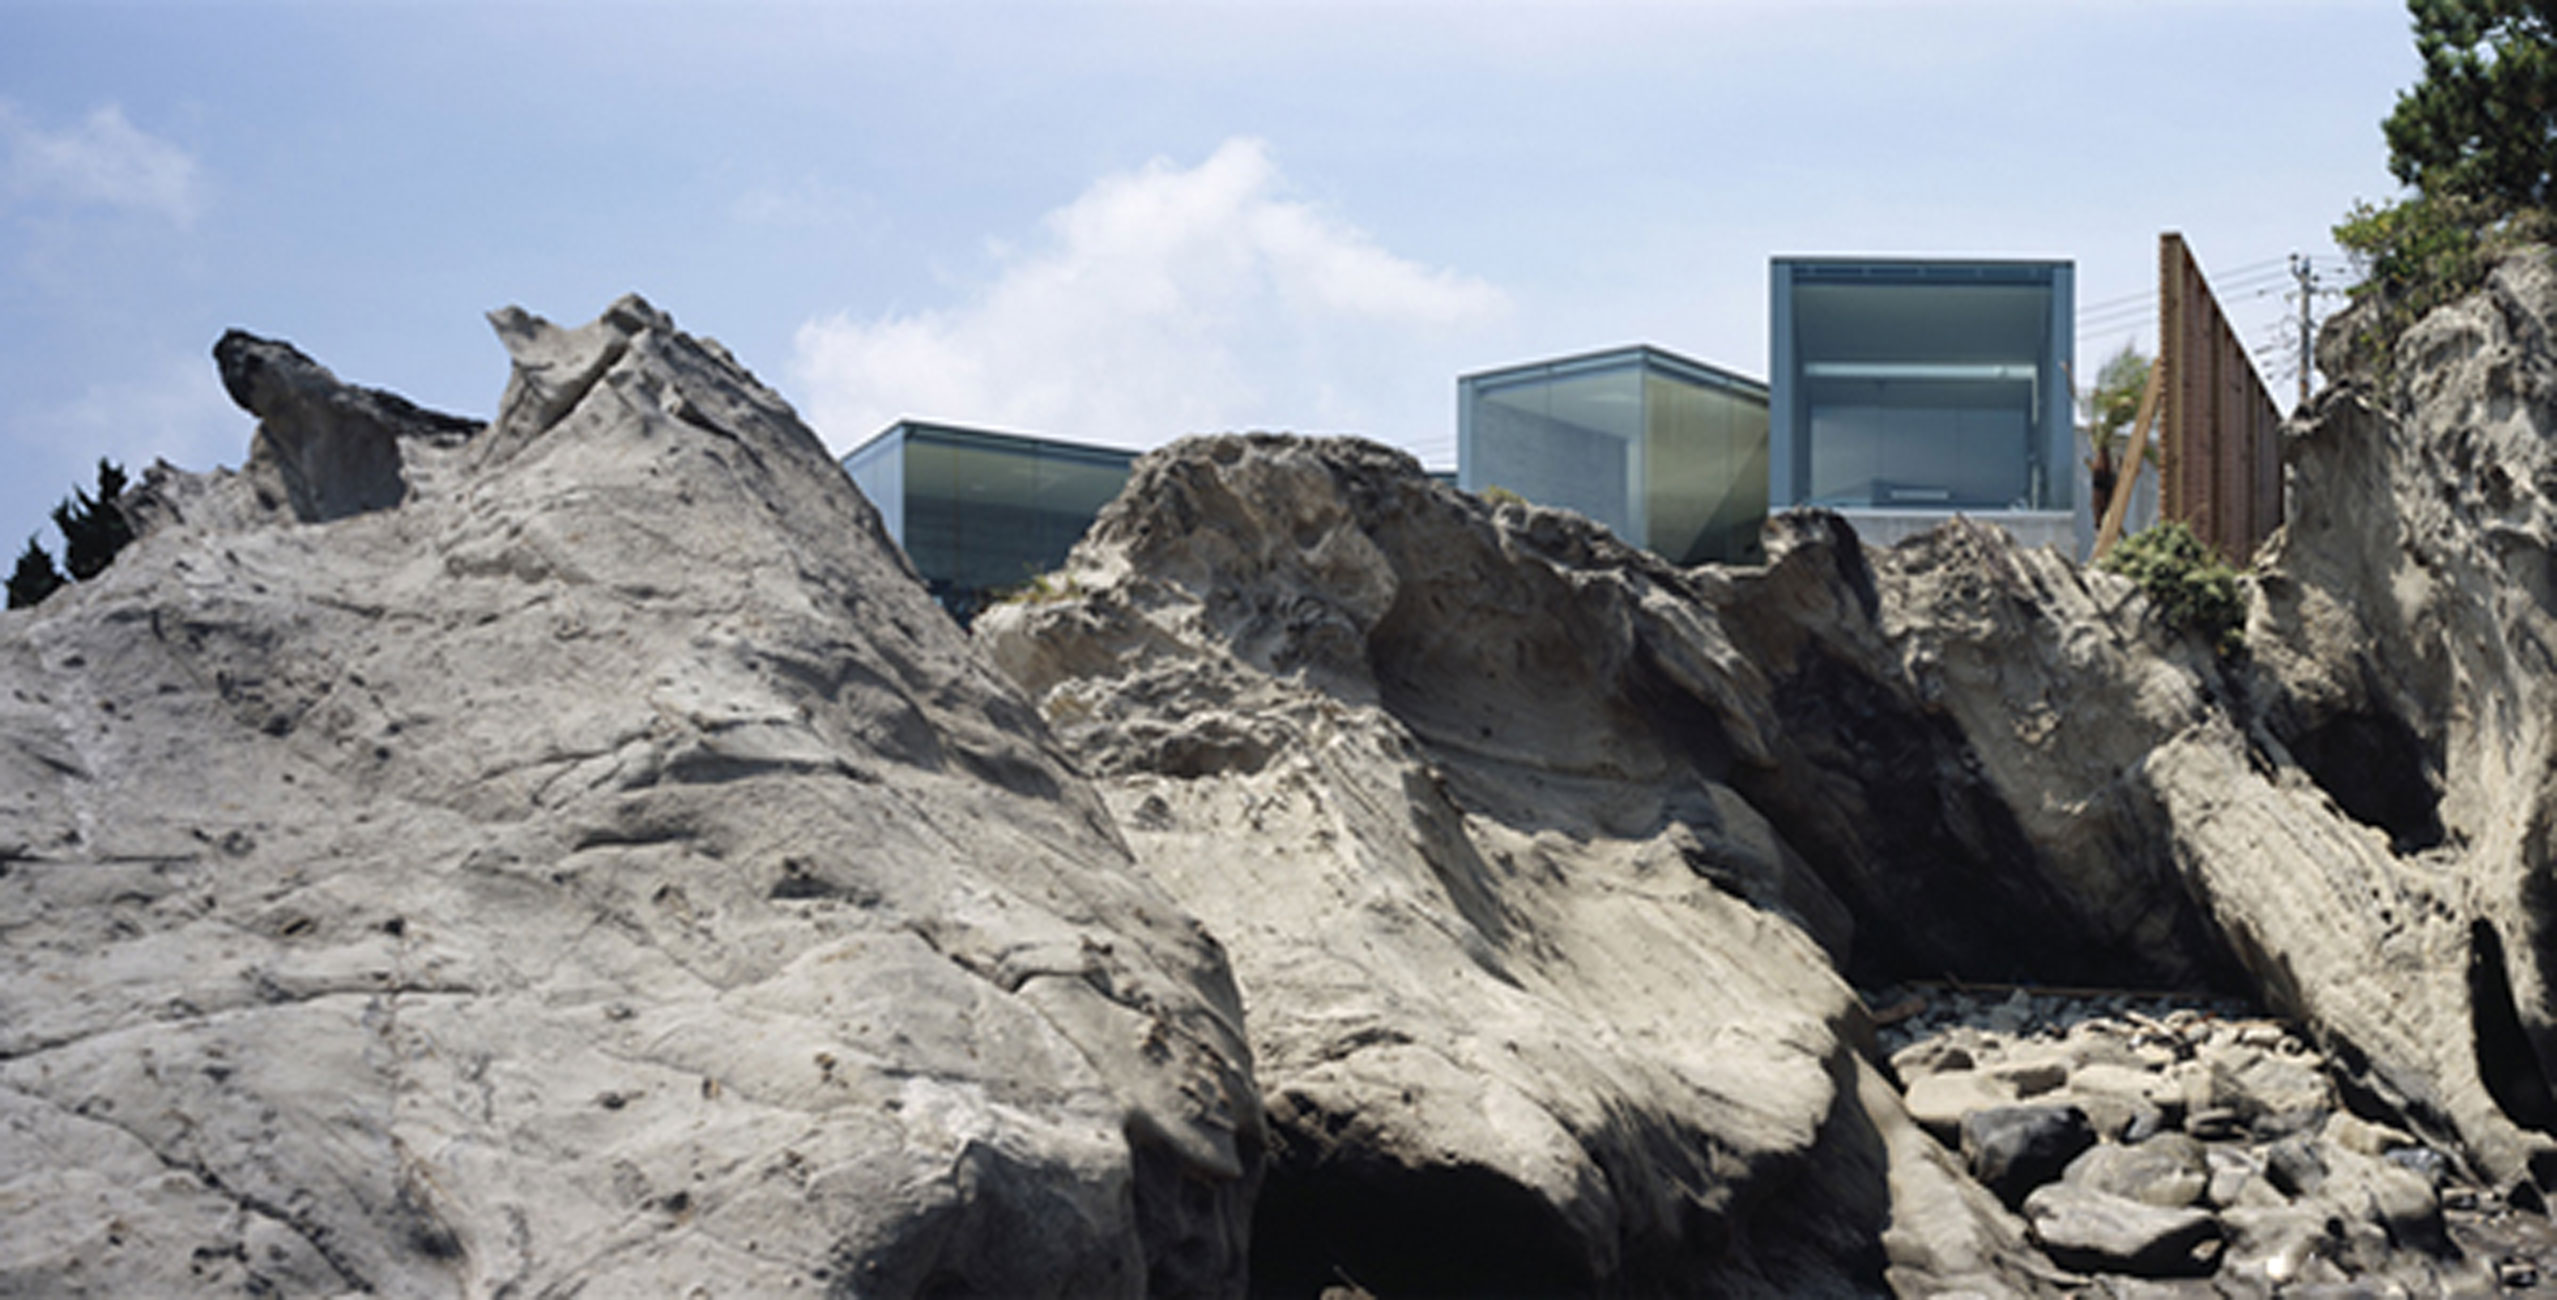 House O, Solid Architecture of a Glass House Design from Japanese Architect - Ocean Pacific Views